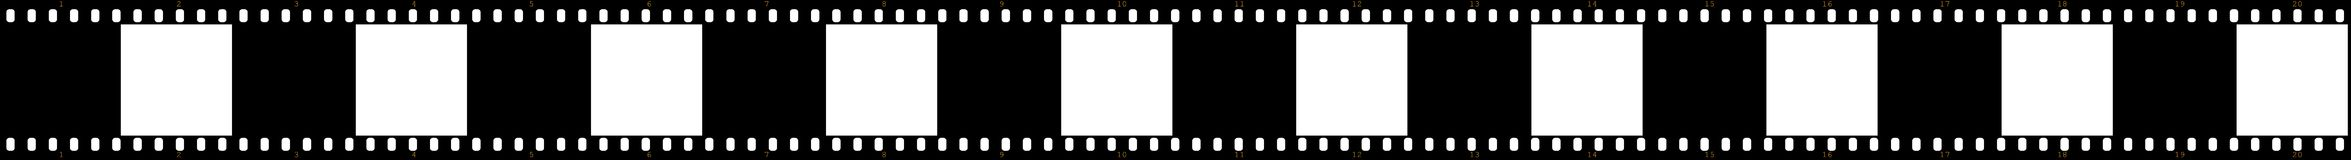 Film stock. Illustration of a film with a sequence of frames Royalty Free Stock Photo